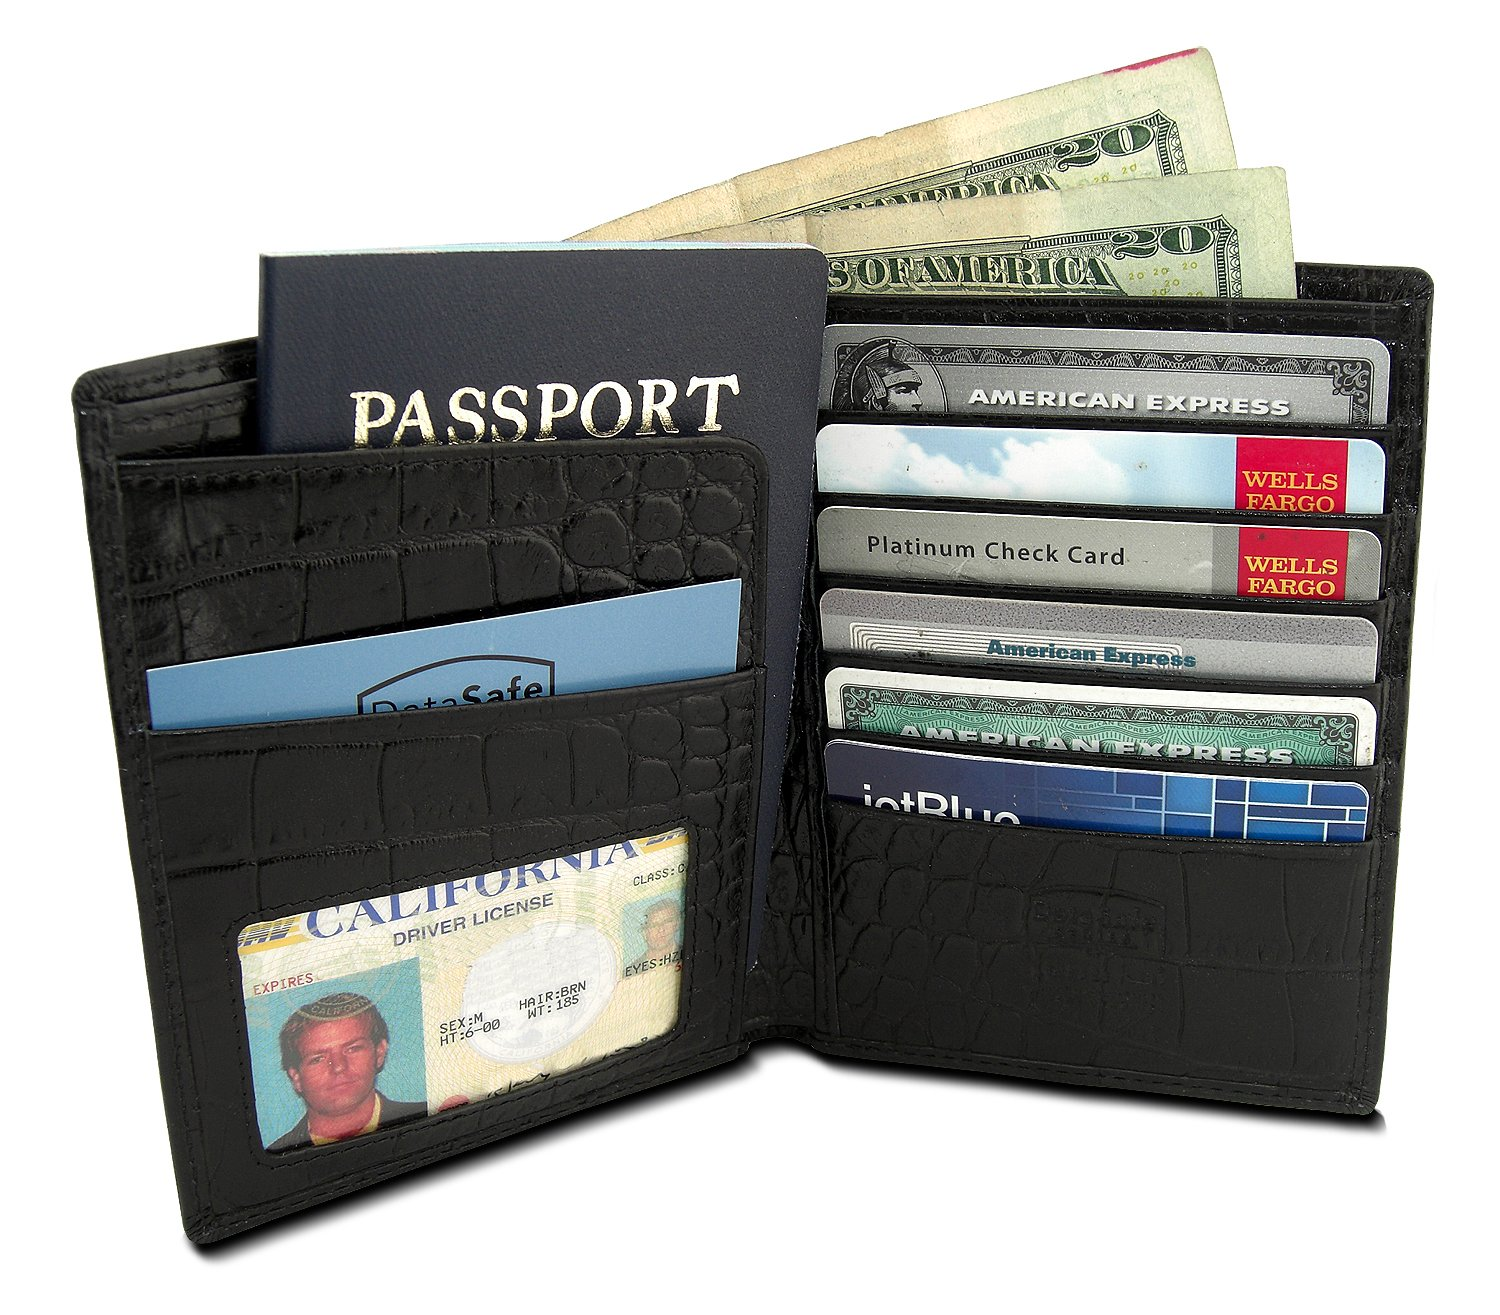 DataSafe Deluxe Italian Leather Passport Wallet with RFID Sheilding Security (Black) by Kena Kai (Image #2)